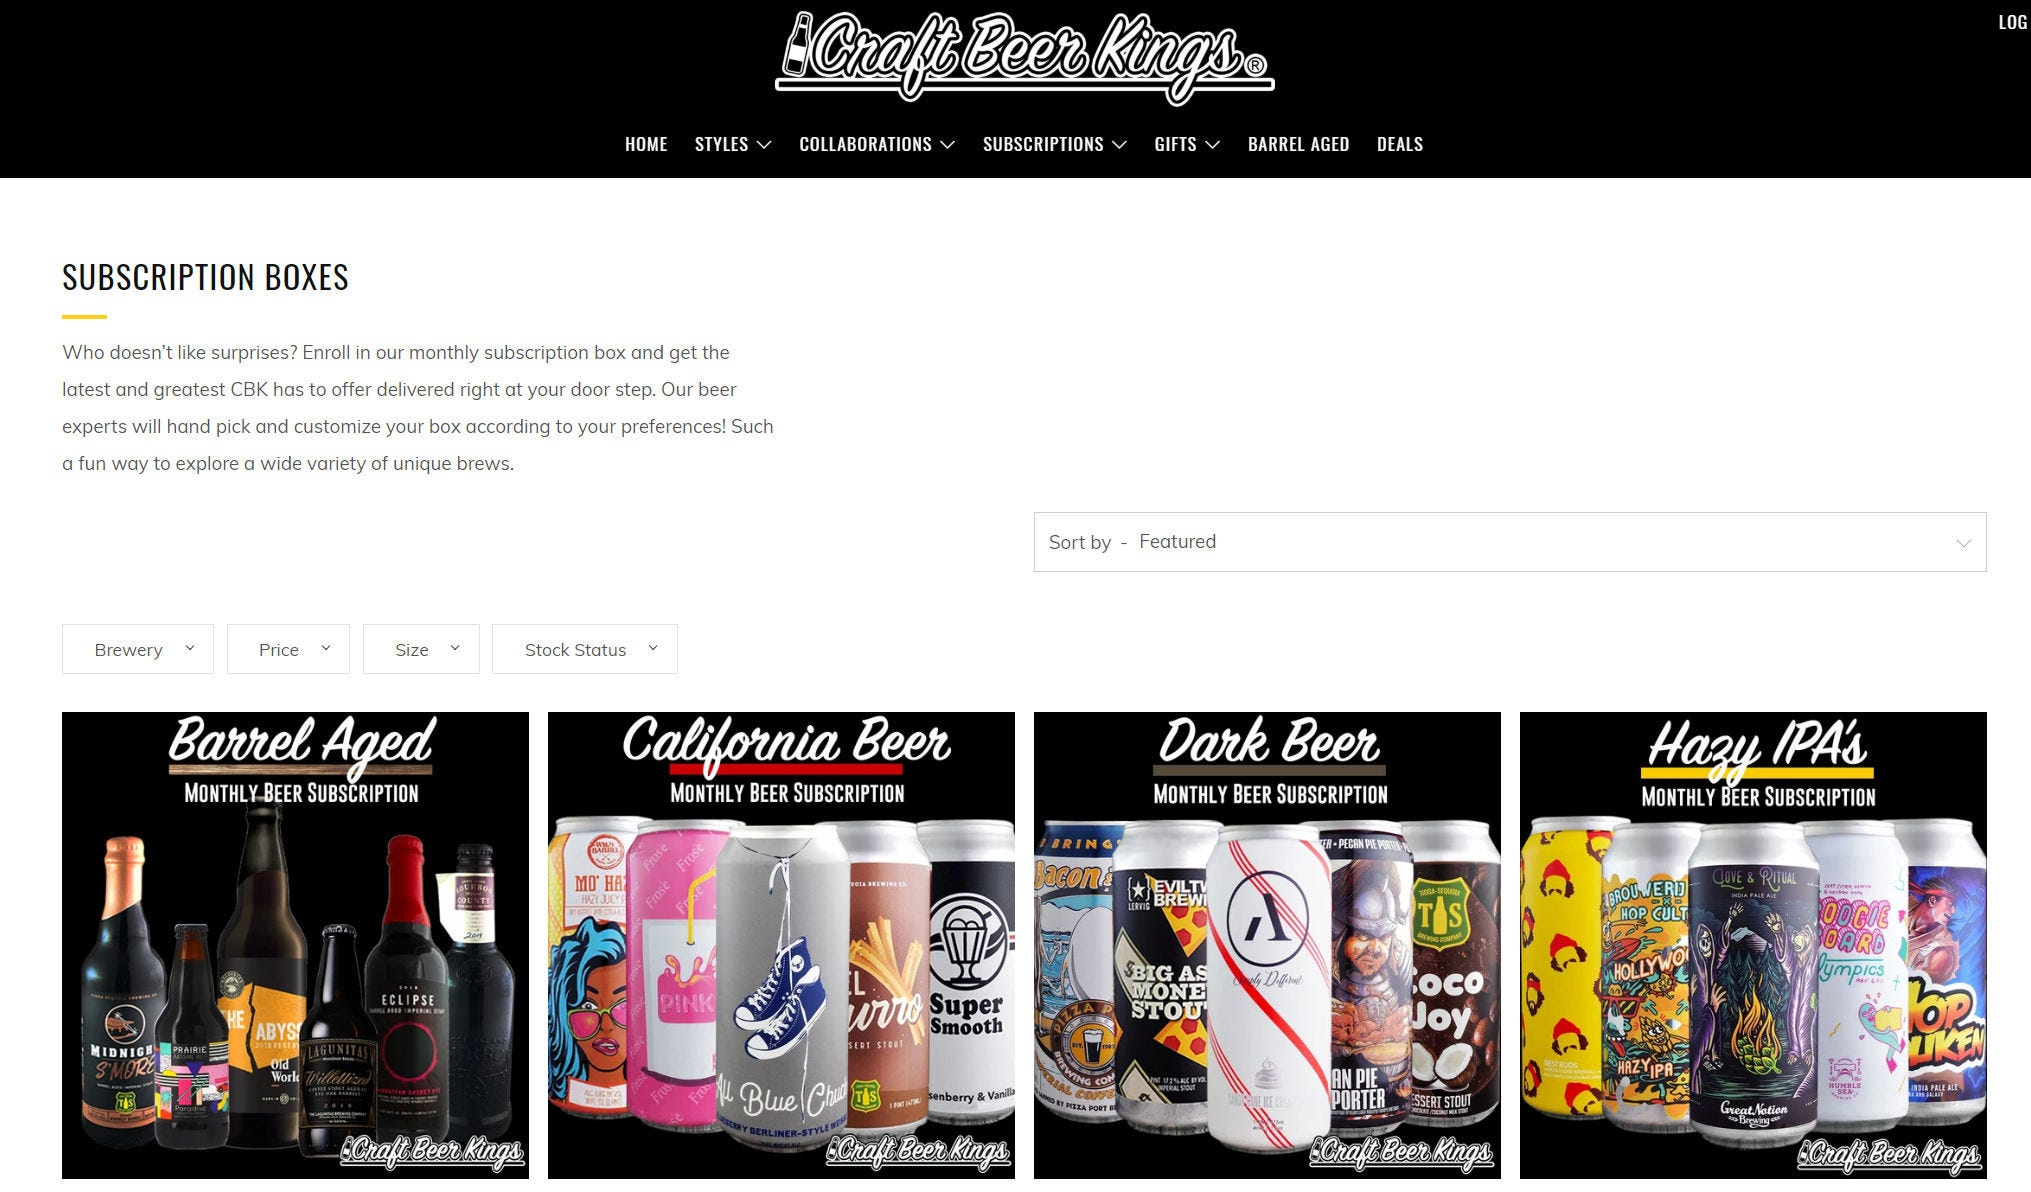 """The Craft Beer Kings """"Subscription Boxes"""" page on its website."""